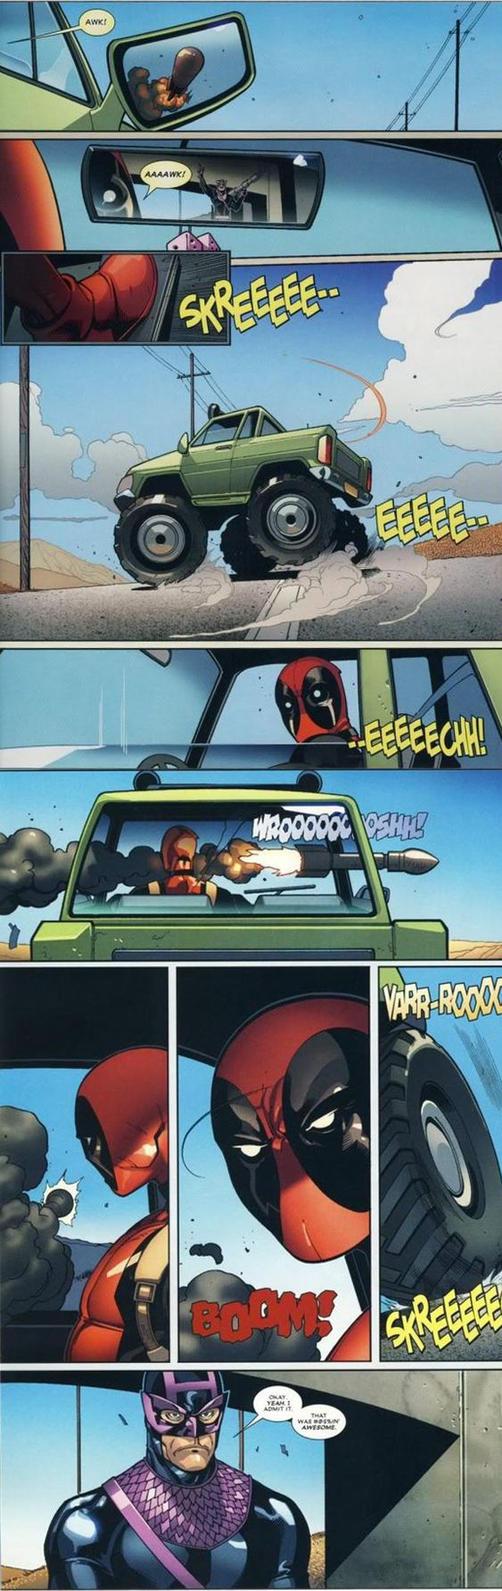 Deadpool Is Batcrap Awesome by sliceoffriedgold